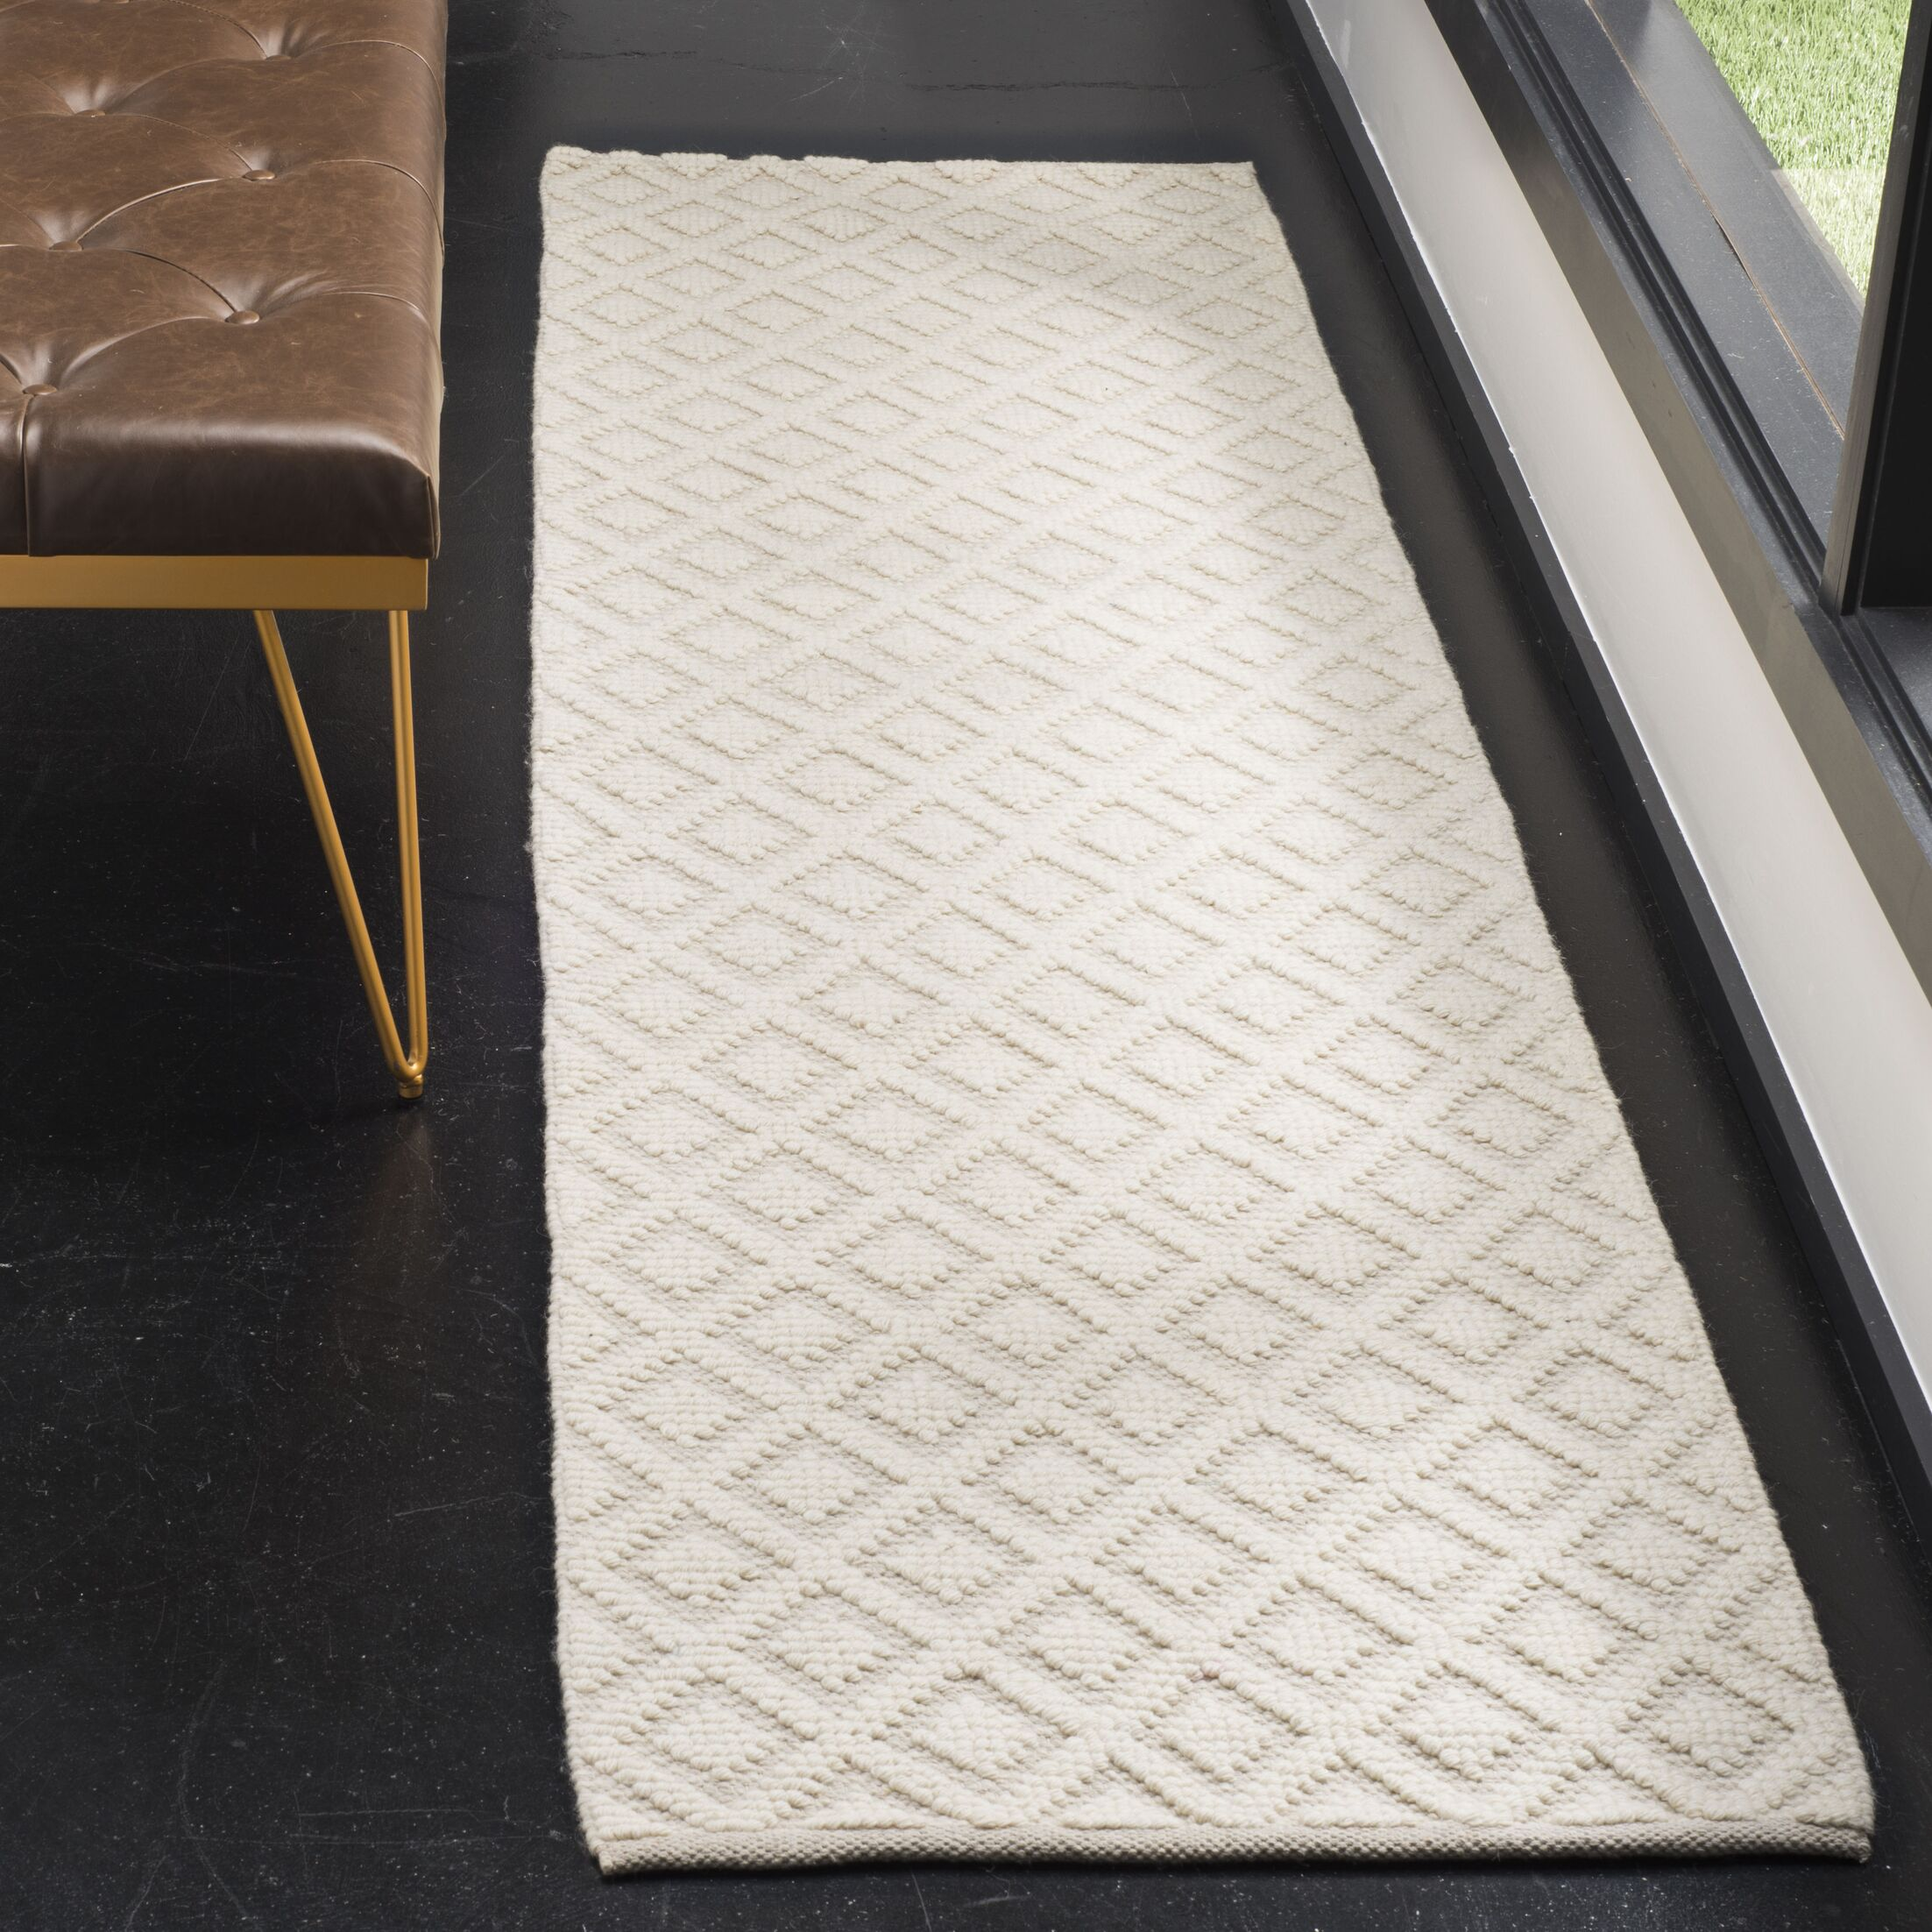 Xamiera Hand Tufted Wool And Cotton Ivory Area Rug Rug Size: Rectangle 8' x 10'